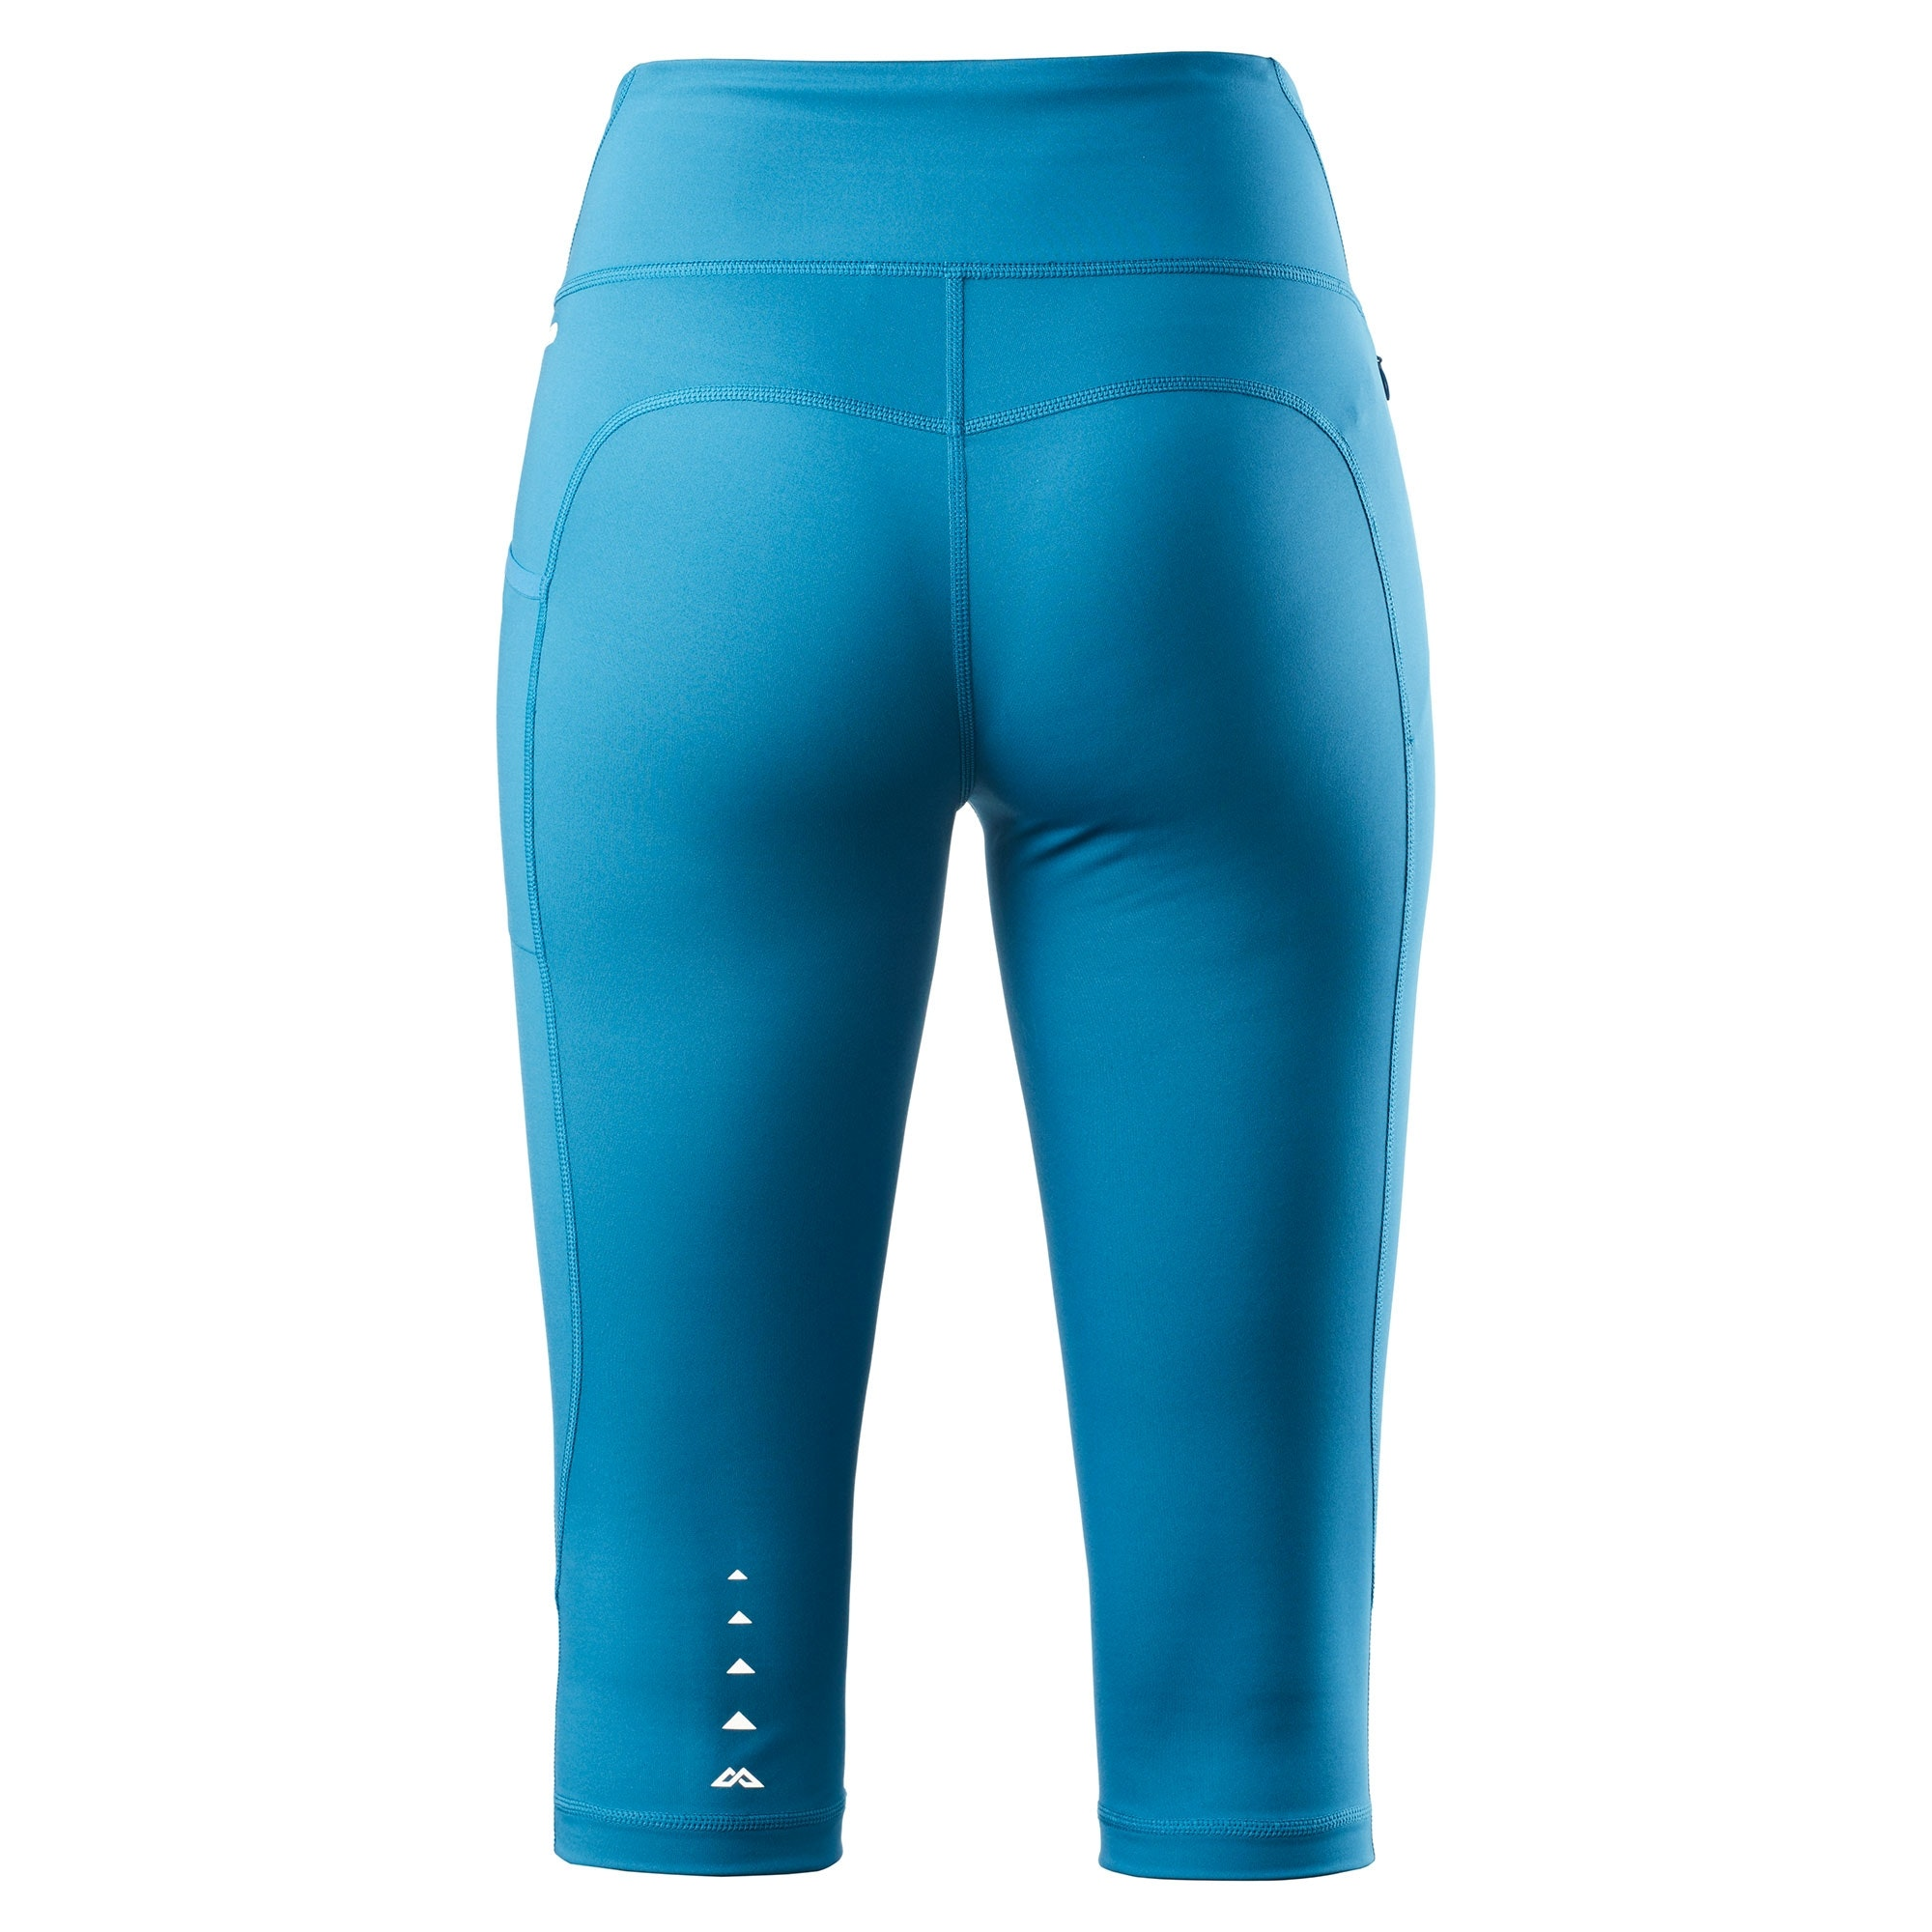 NEW-Kathmandu-Zeolite-Women-039-s-Active-Performance-3-4-Leggings thumbnail 13